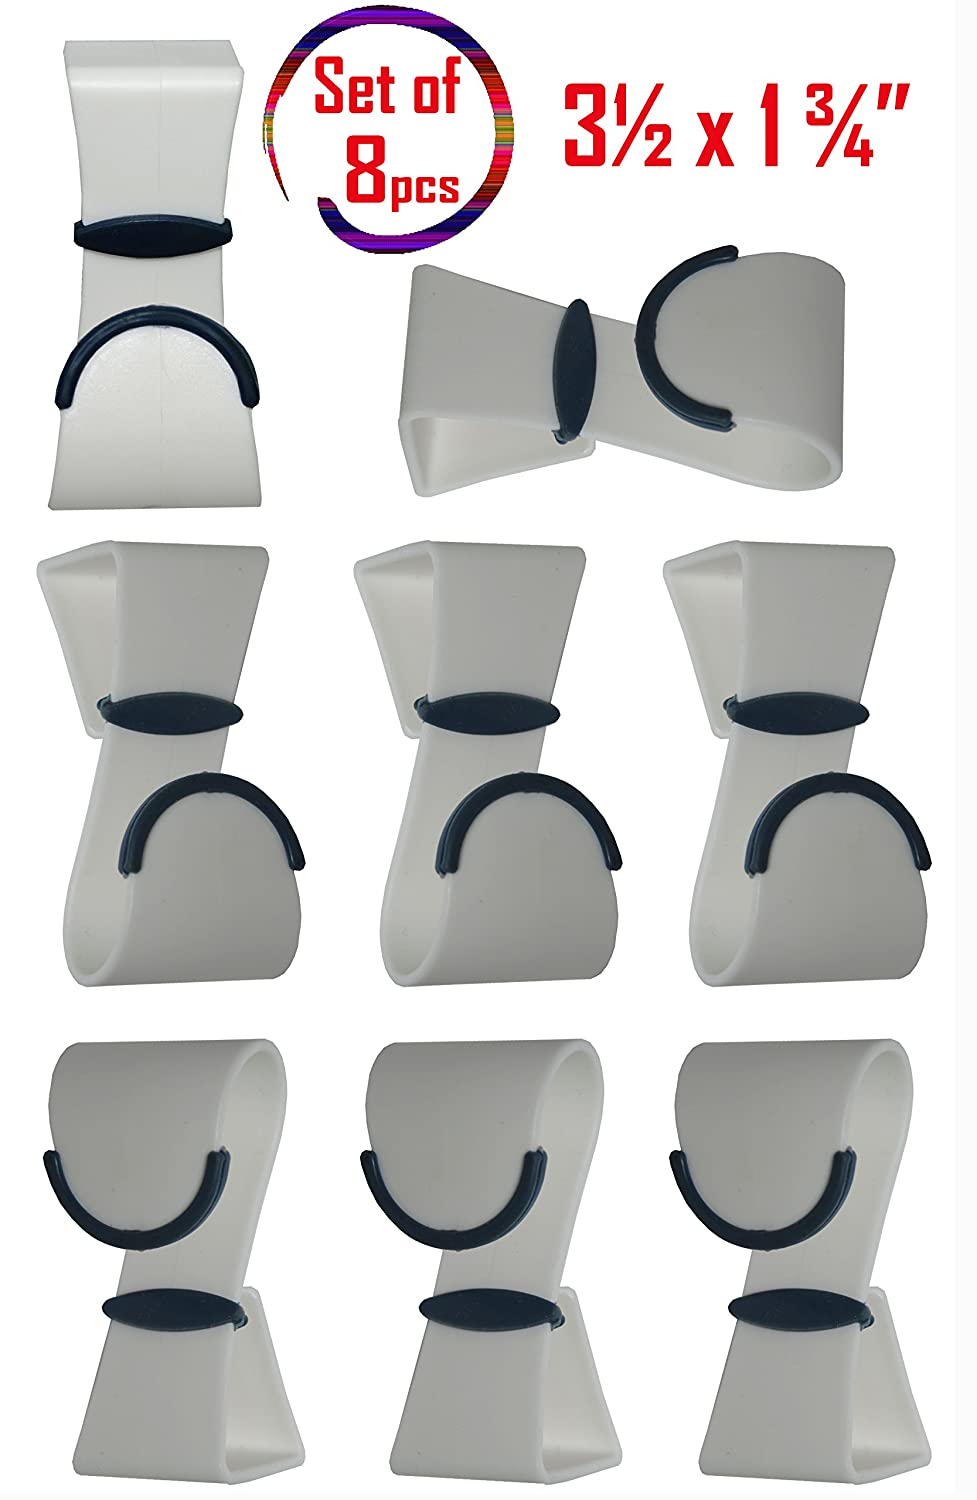 Set of 8 White Over-the-Door Hooks / Hanger Organizer Hooks / Clothes, Coat, Bath Towel Hooks / Plastic